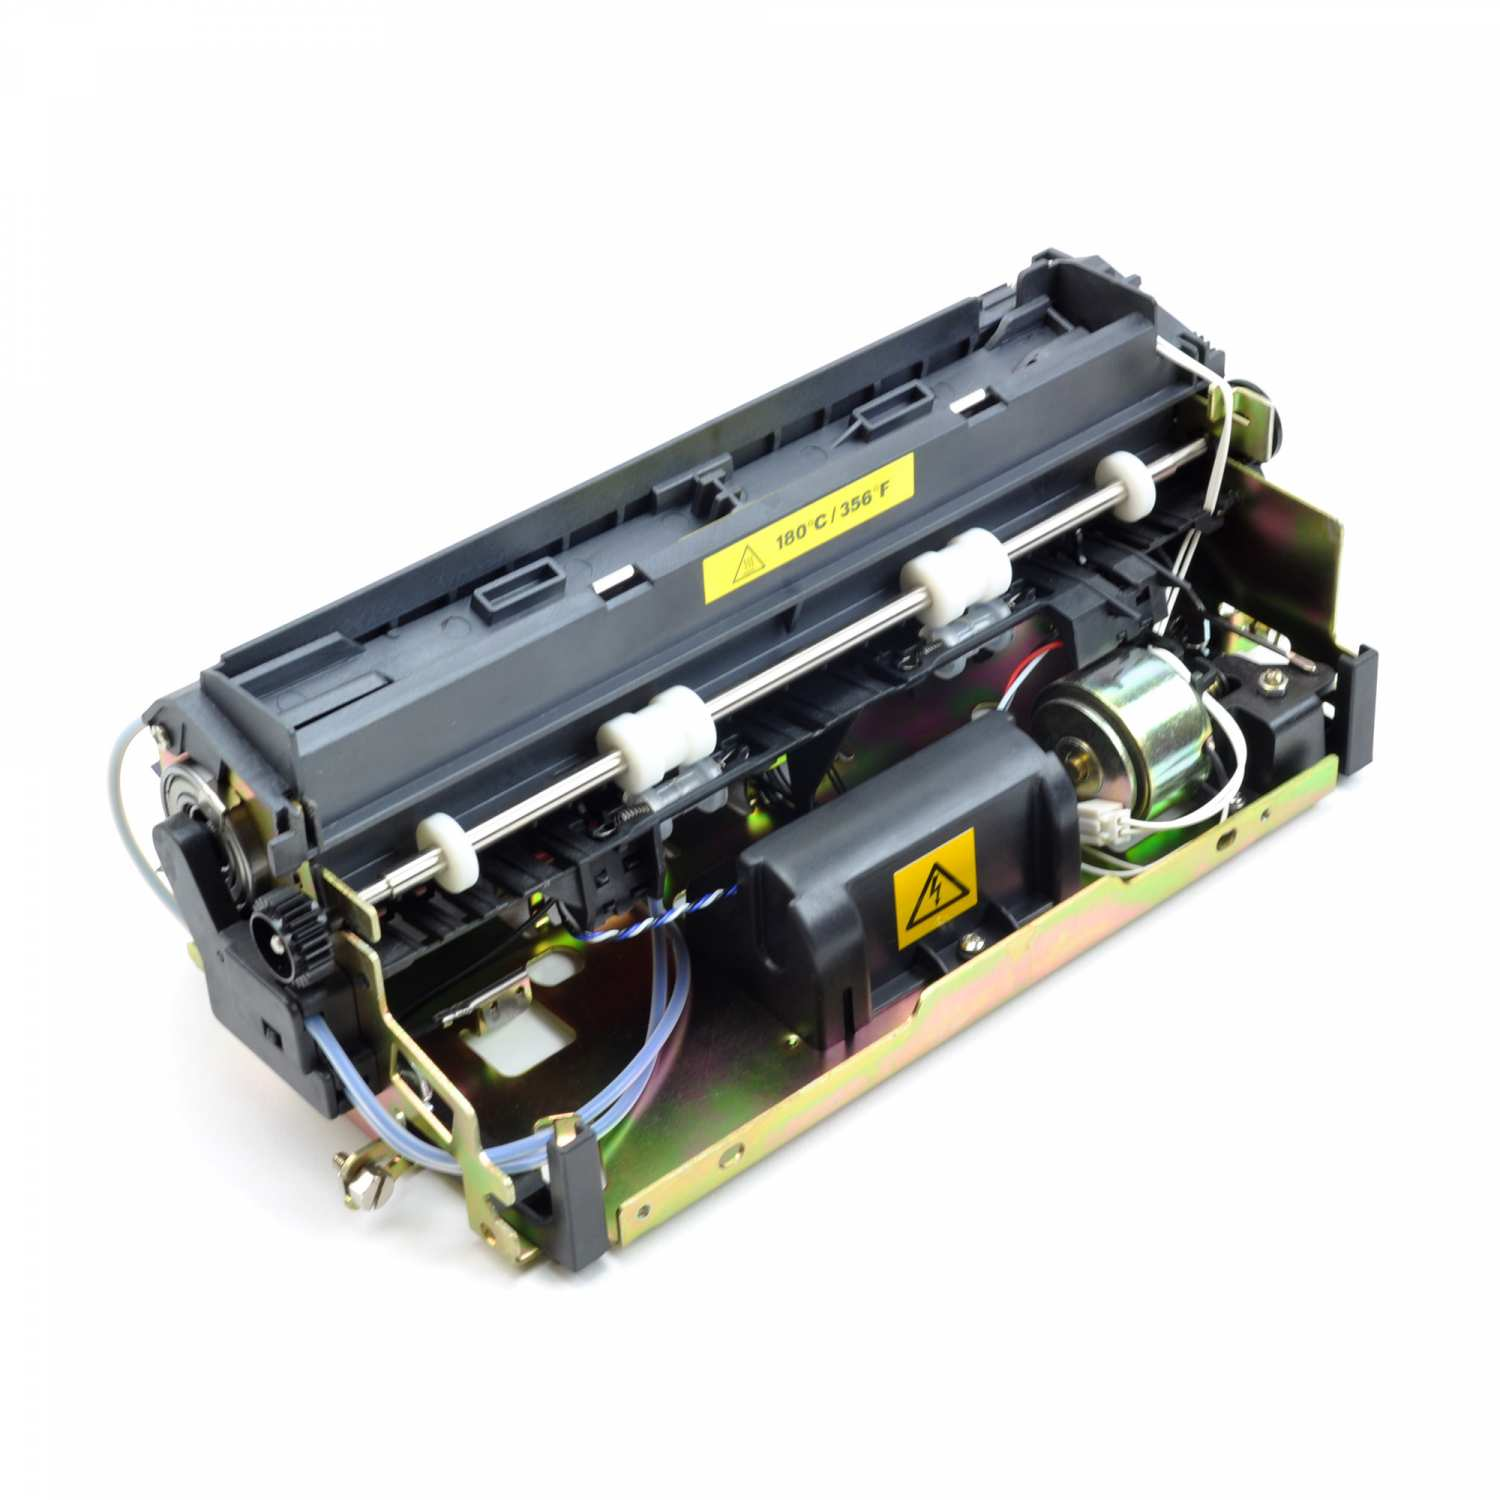 99A2405 Fuser Assembly (110V) - T622 Purchase for Lexmark T62x